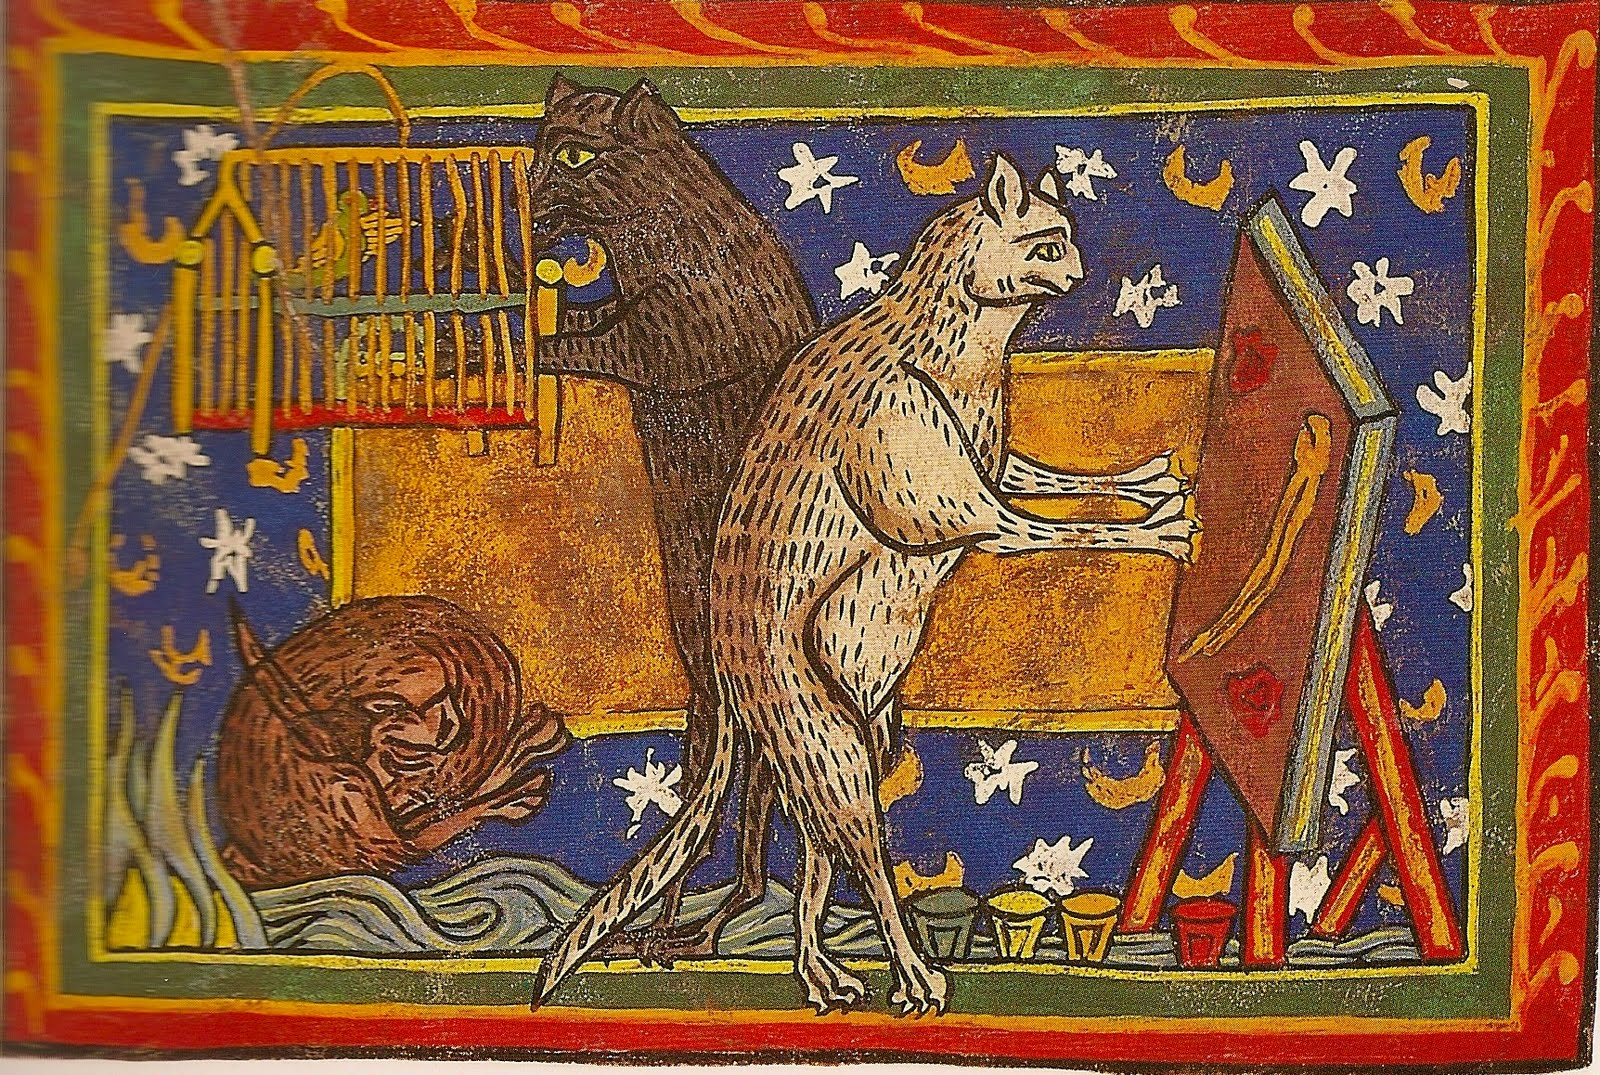 19 bizarre lifestyle tips from the medieval period